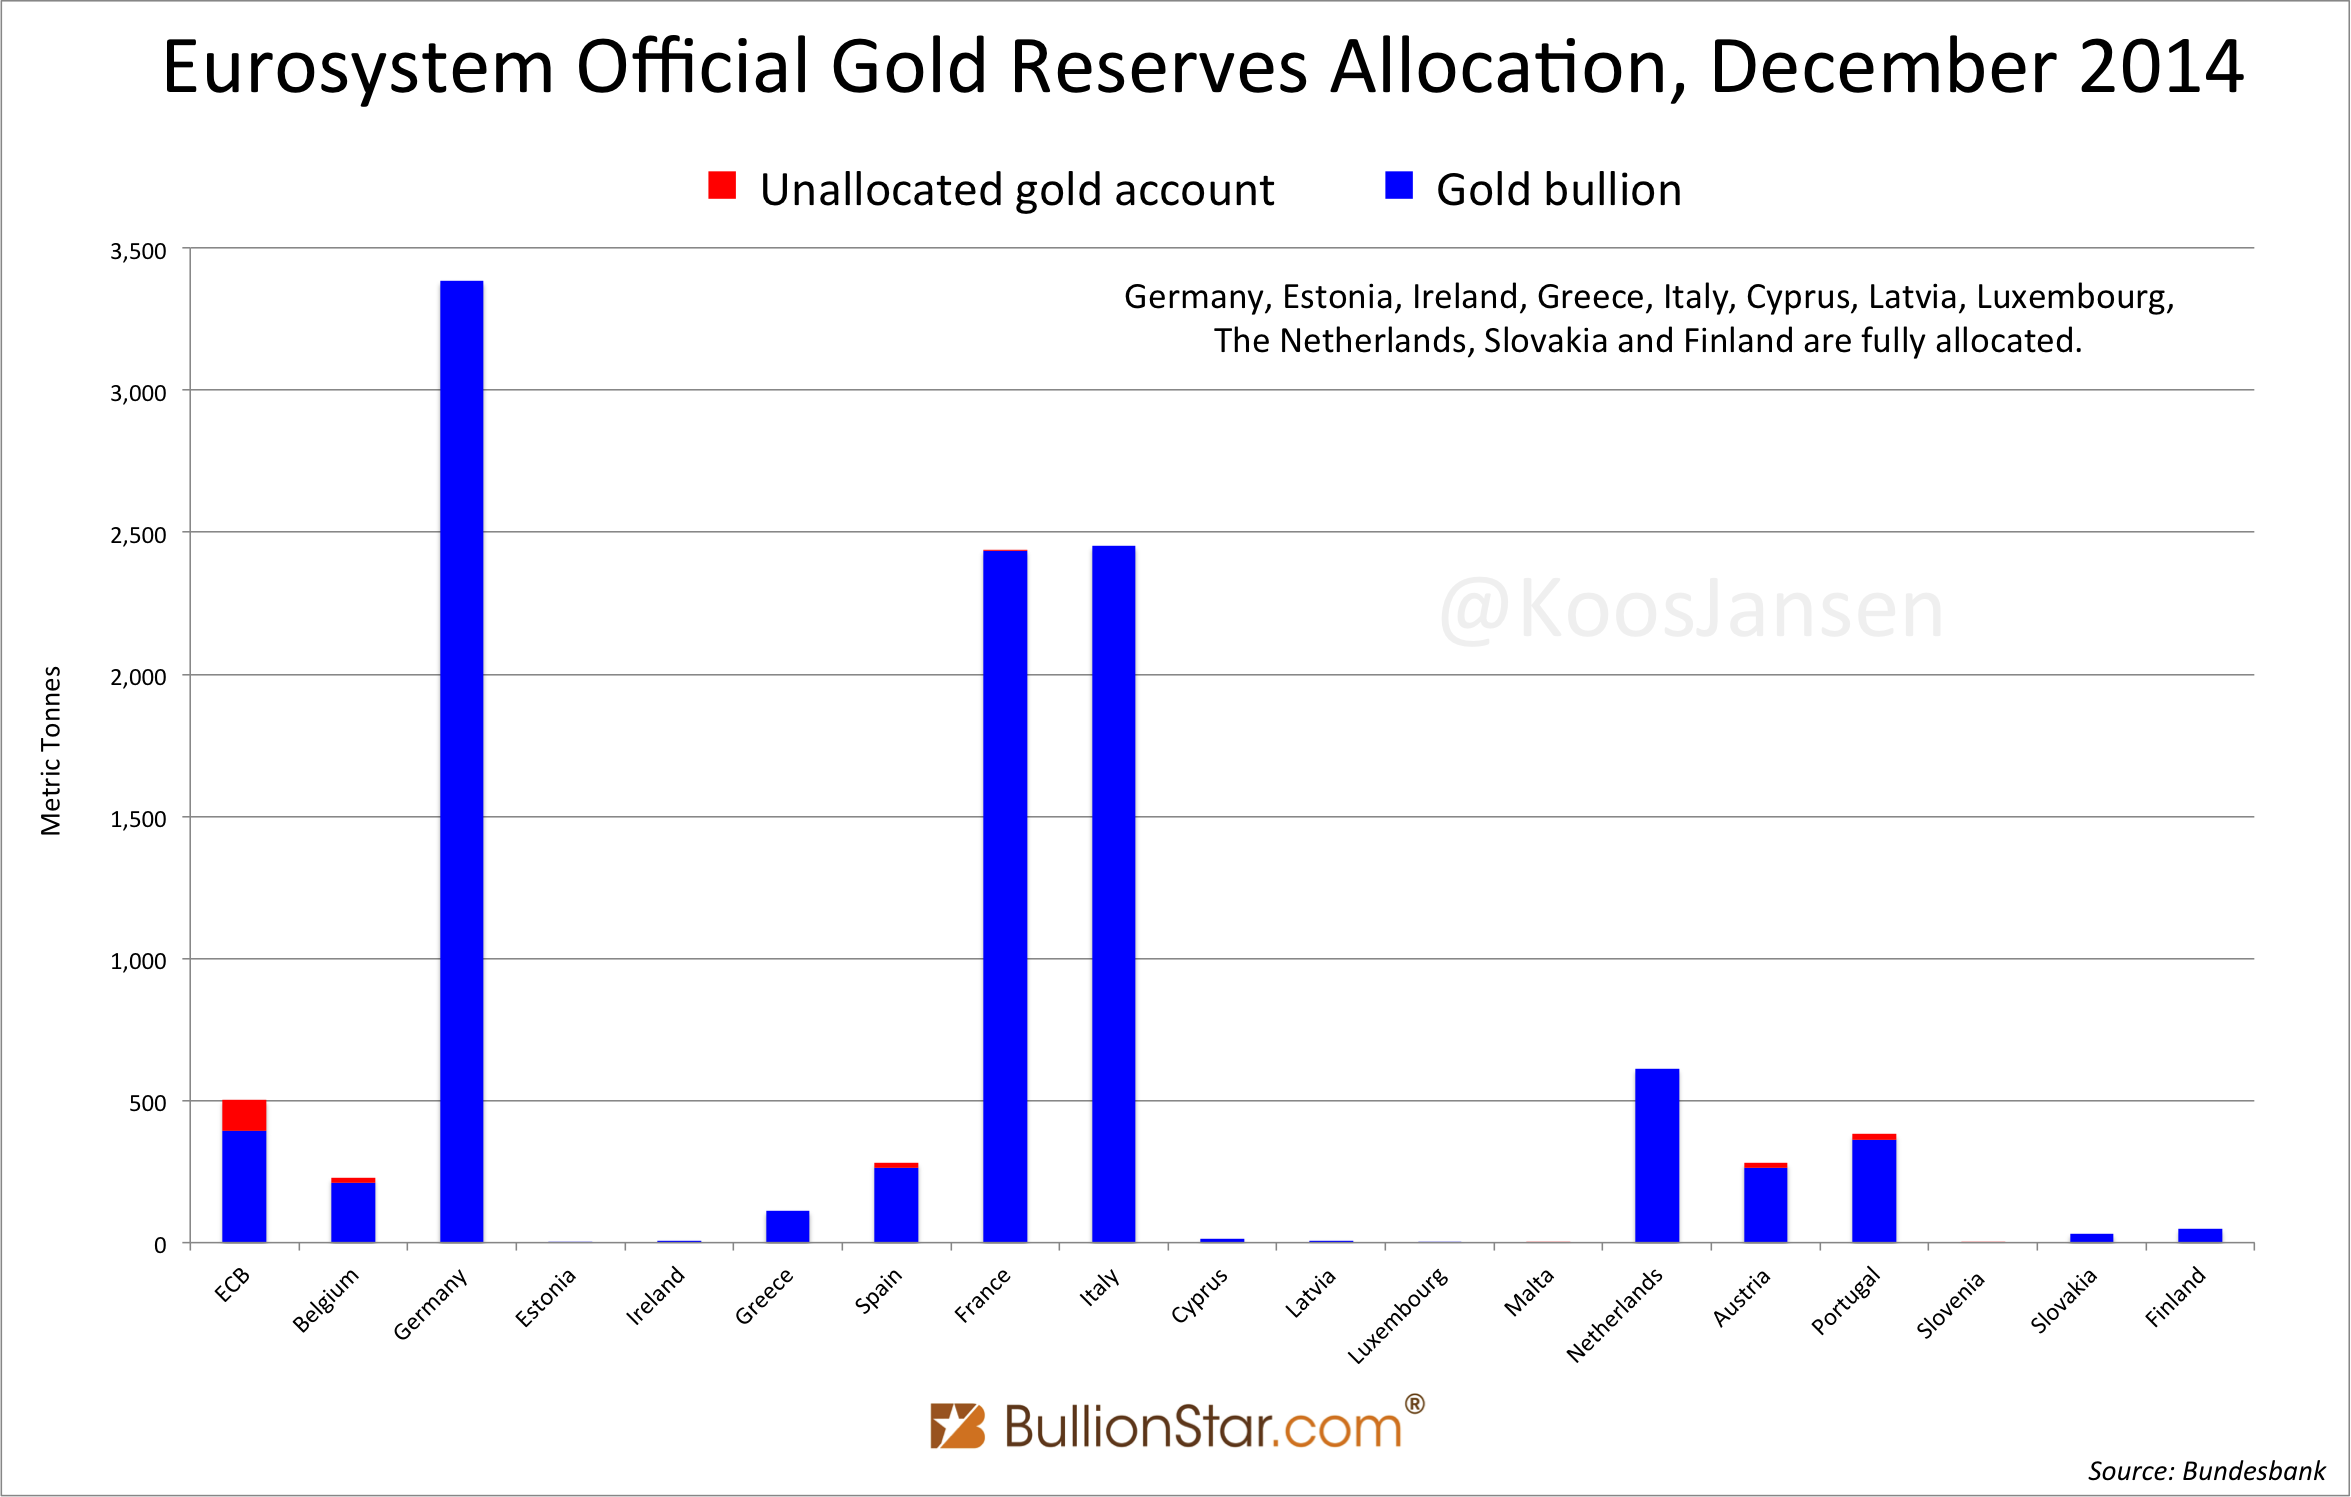 Eurosystem Official Gold Reserves Allocation December 2014